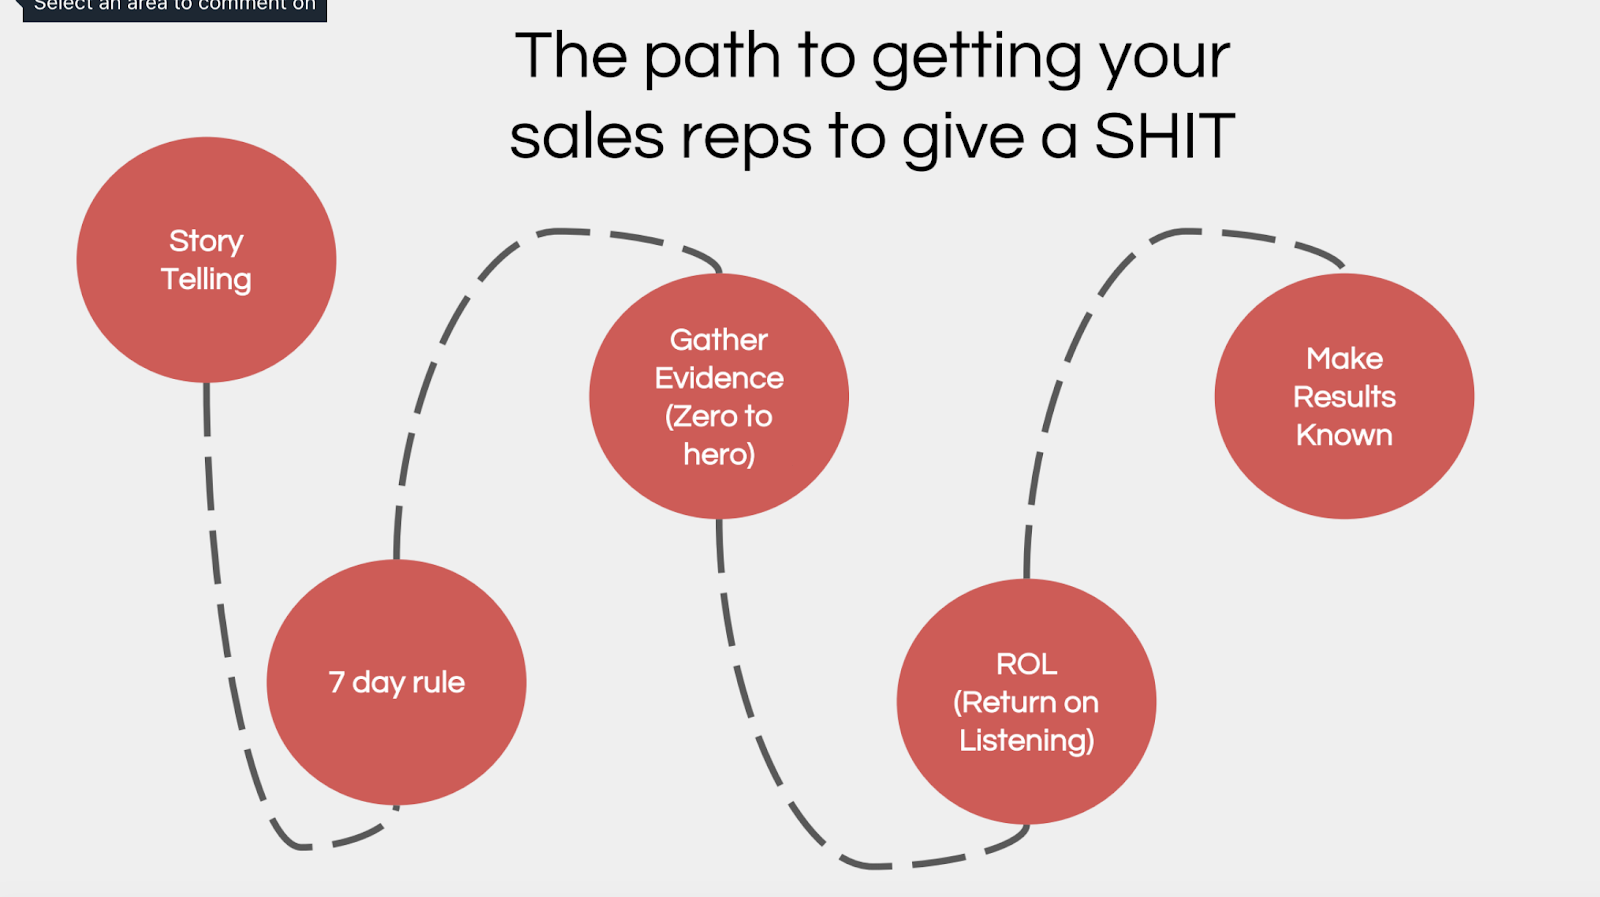 The path to getting your sales reps to give a shit